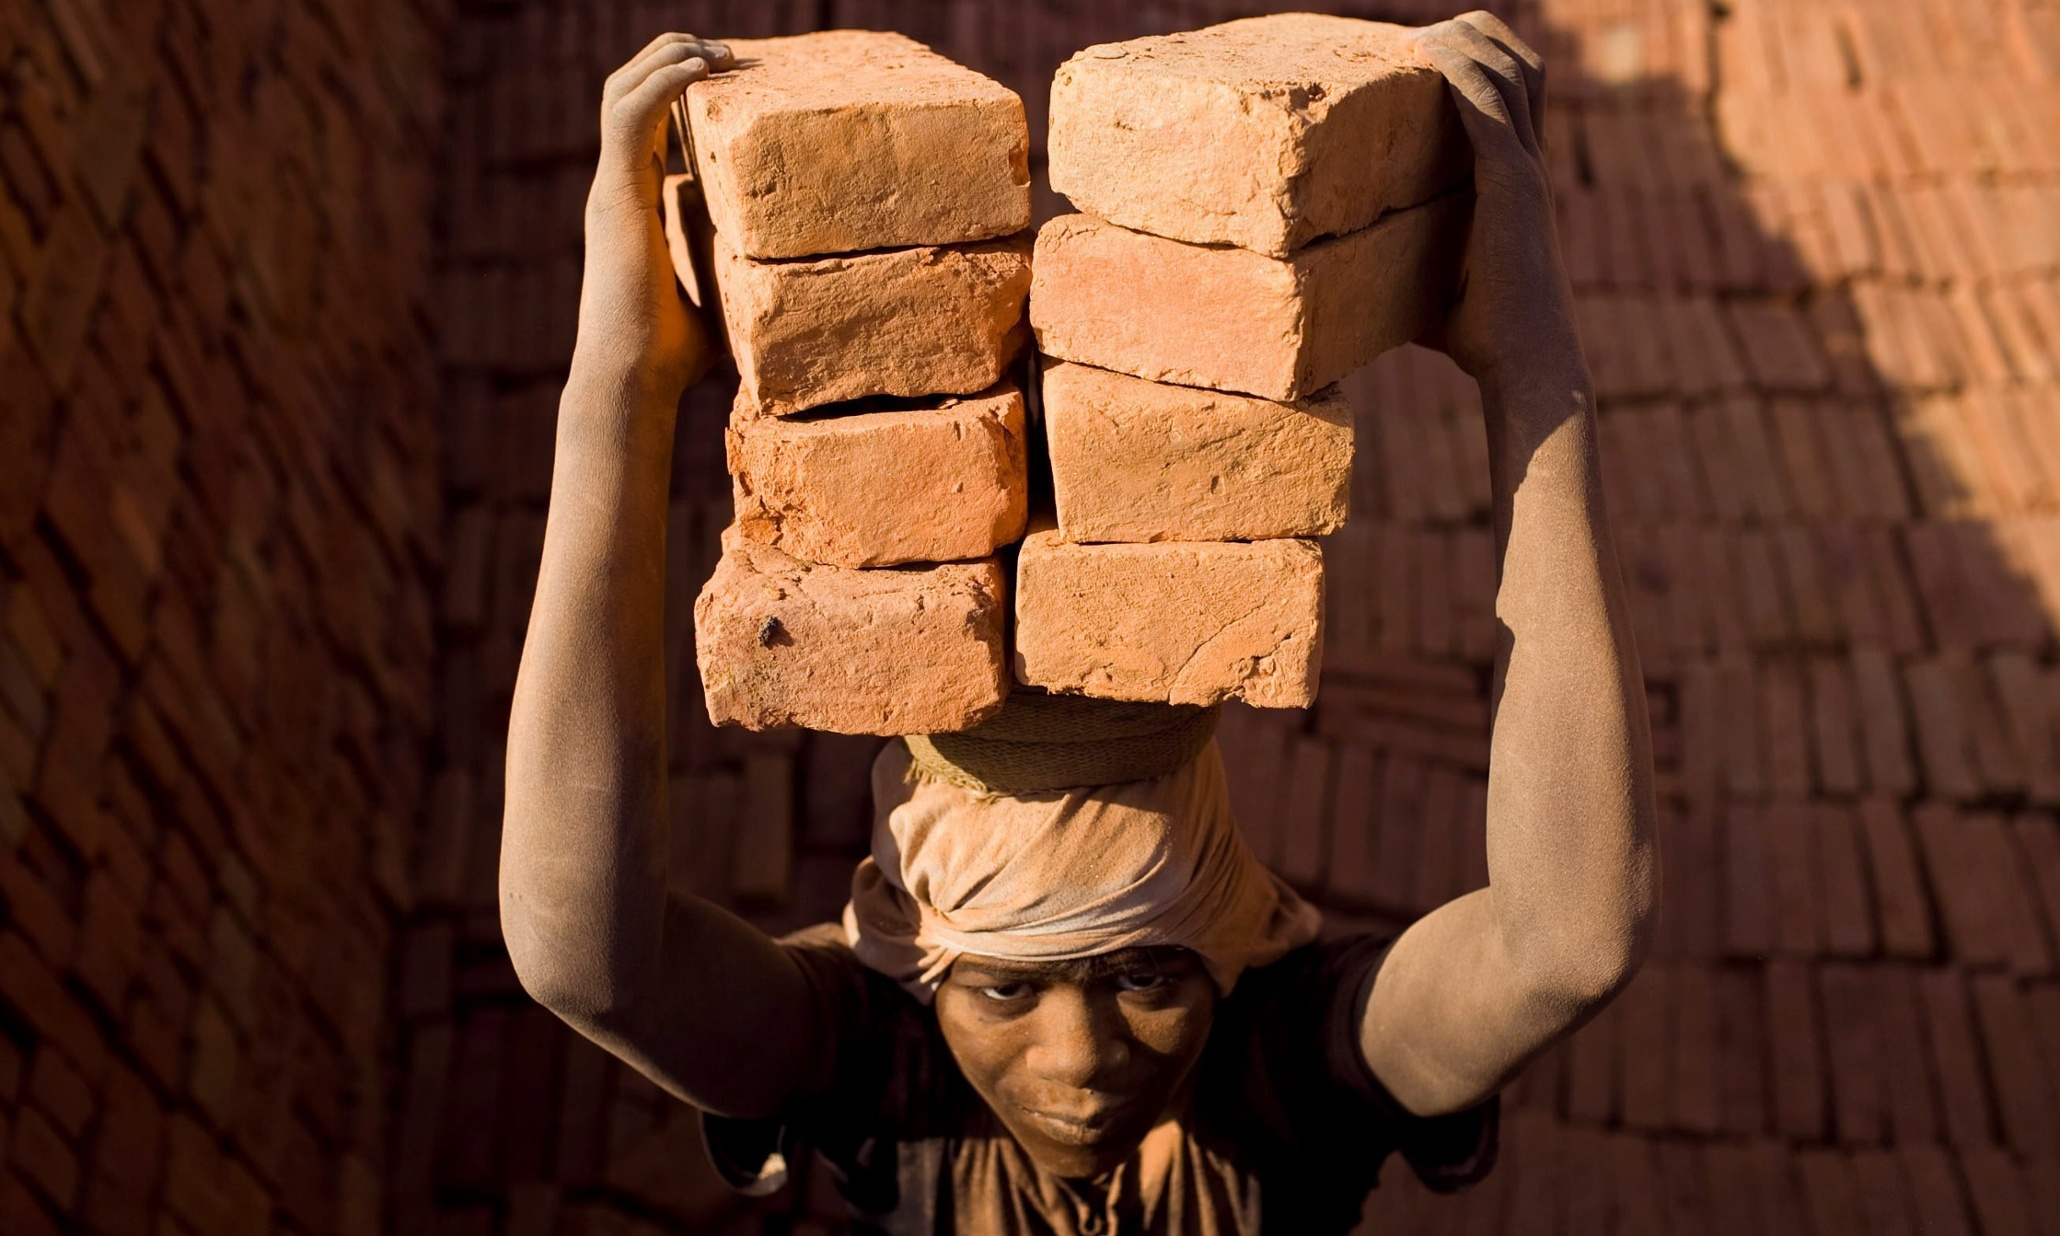 Child labour is a crime in India, but we hardly treat it as an evil